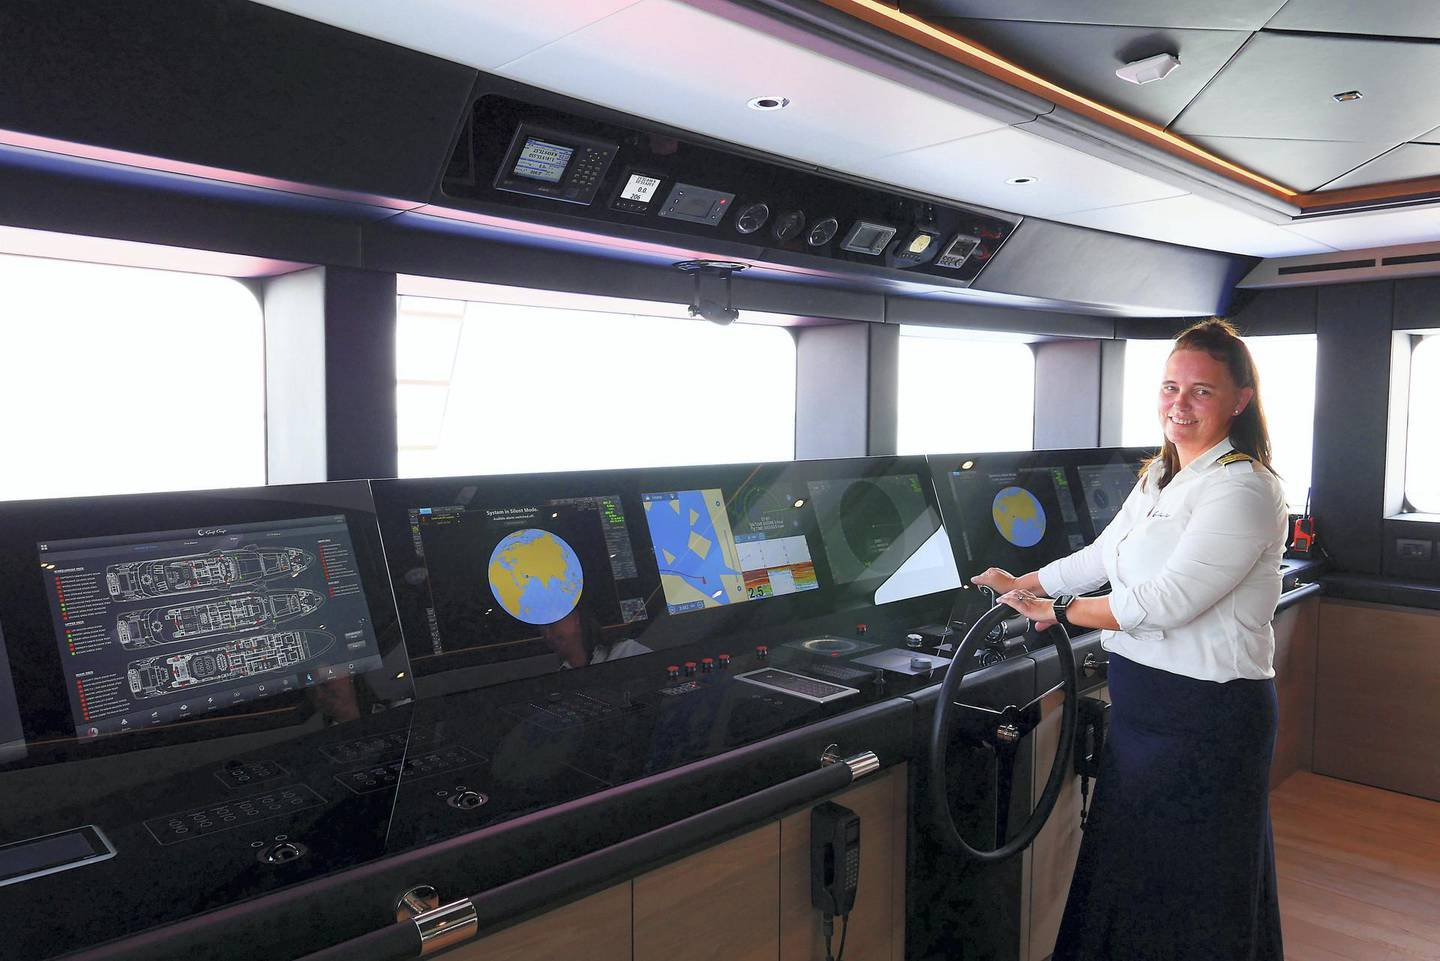 Patricia Caswell, the only female boat captain in the UAE, one of only a few hundred worldwide at the Gulf Craft in Umm Al Quwain on April 28,2021. Pawan Singh / The National